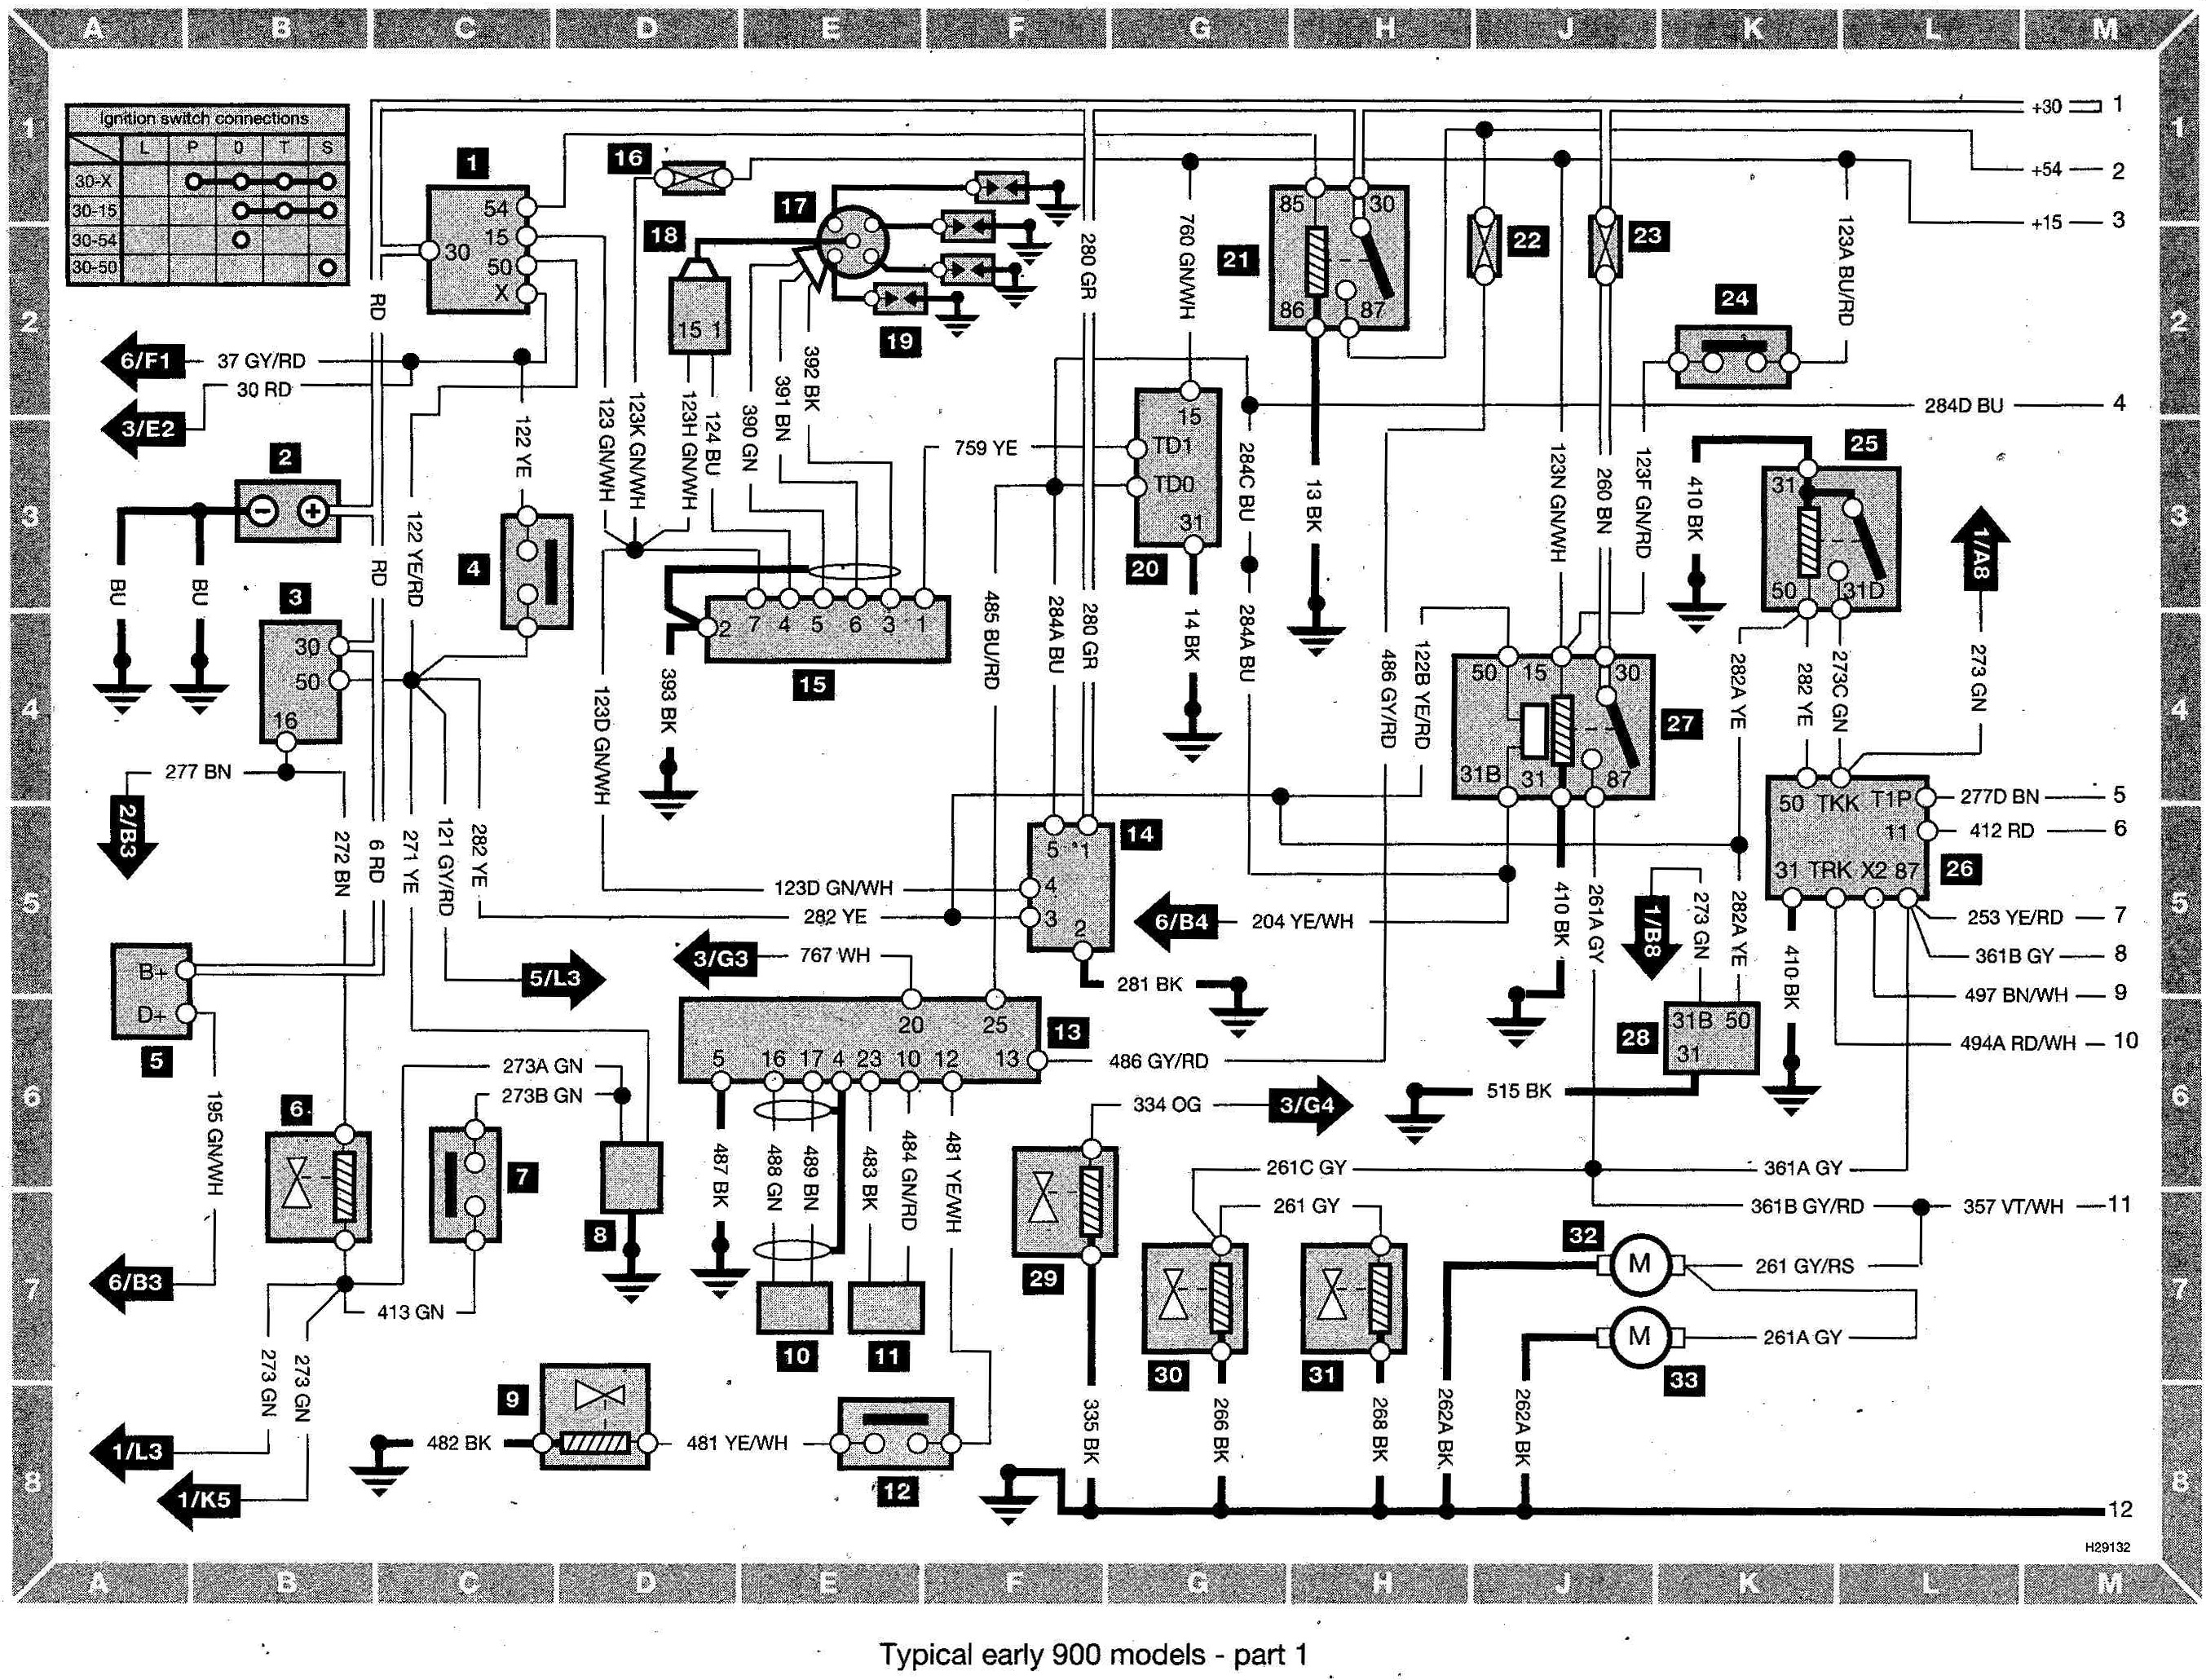 DIAGRAM] 2004 Saab 9 3 Fuel Pump Wiring Diagram FULL Version HD Quality Wiring  Diagram - TRAILERWIRINGDIAGRAM.LAVITADIDANTE.ITWiring And Fuse Image - Lavitadidante.it